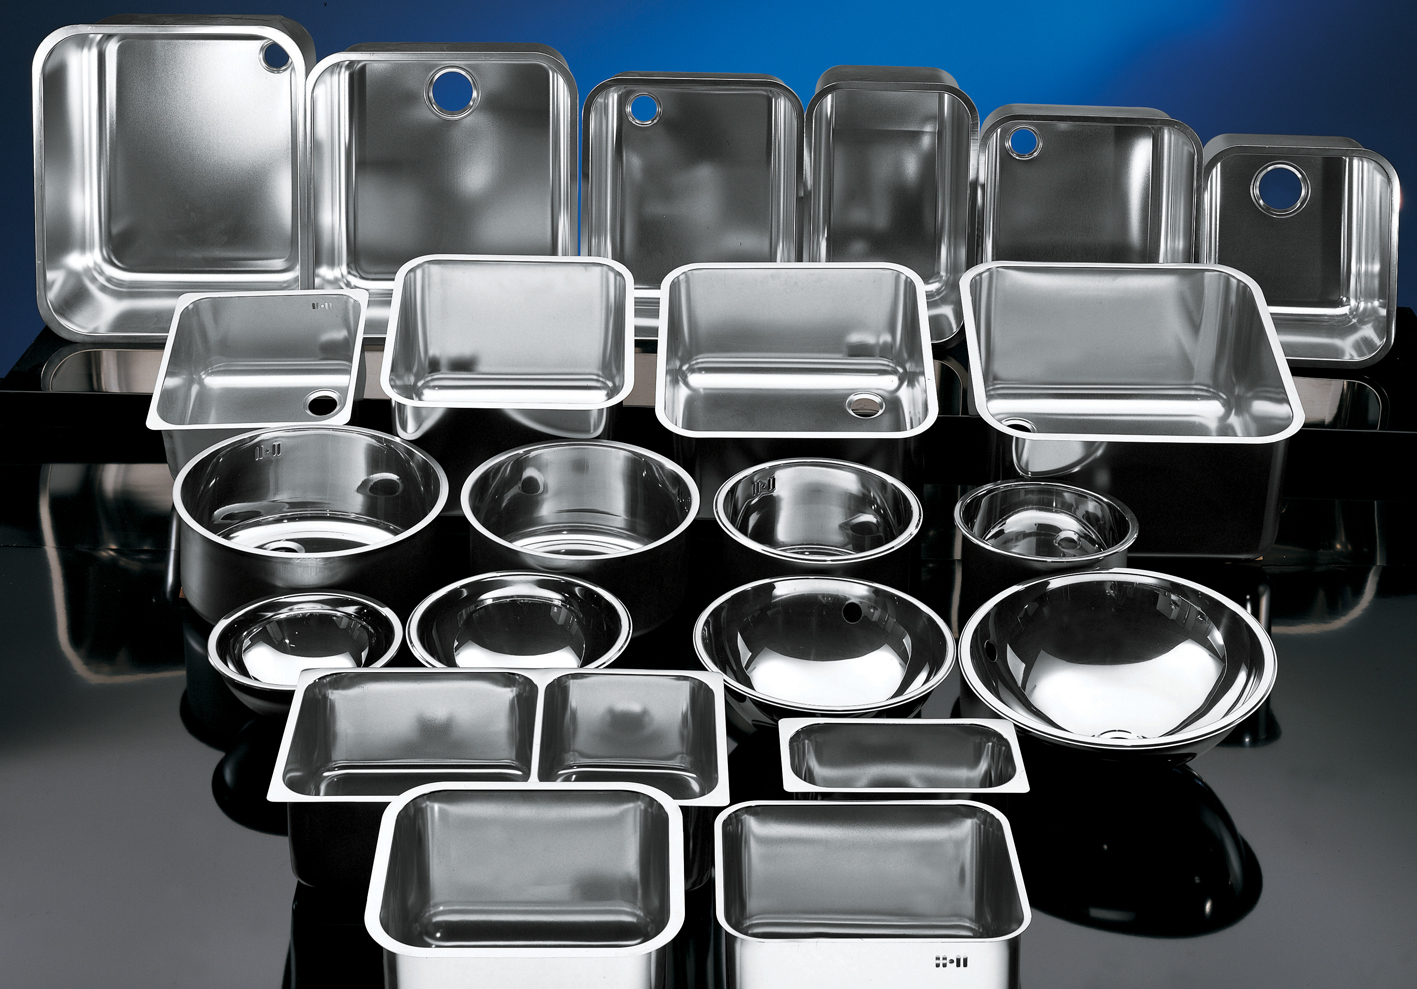 Sinks  stainless steel